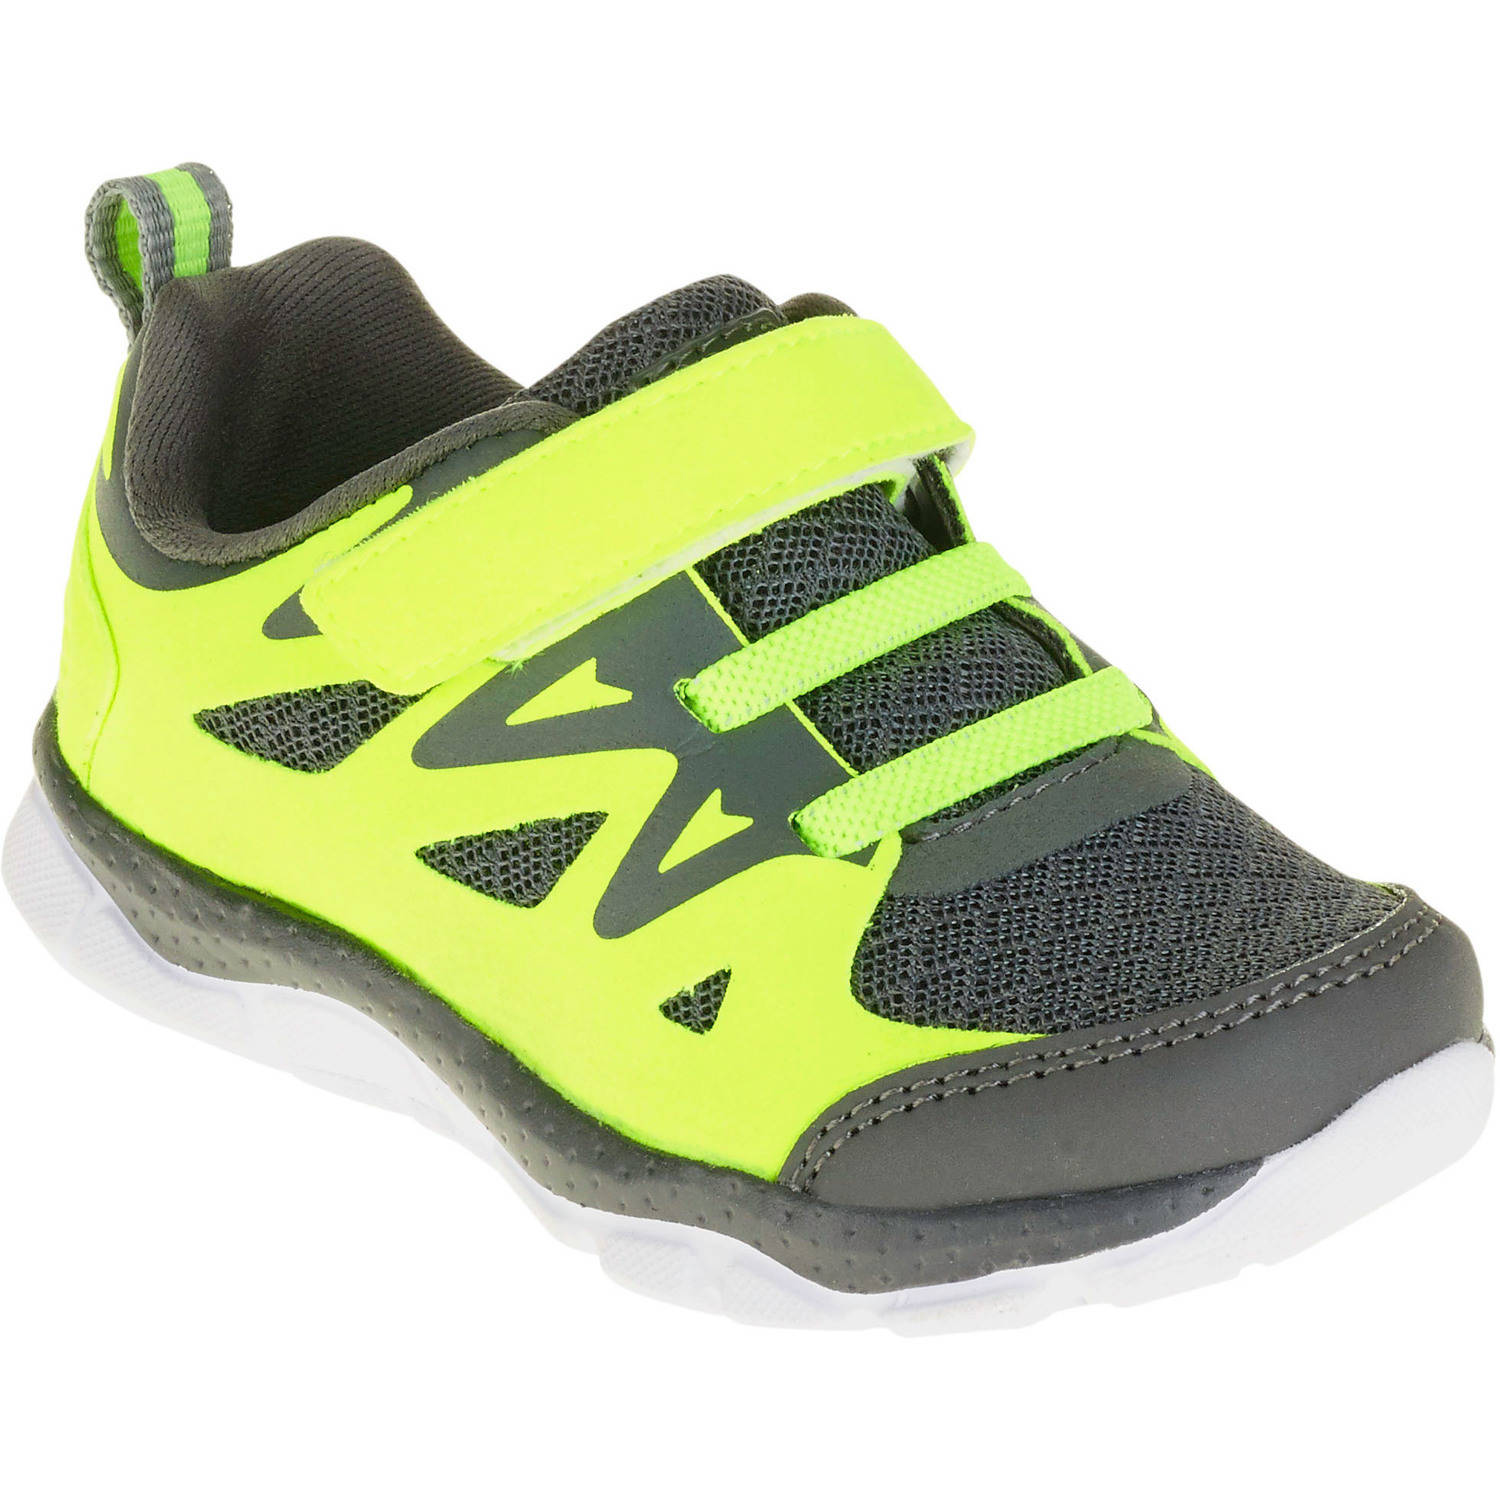 Starter Toddler Boys' Athletic Lightweight Shoe